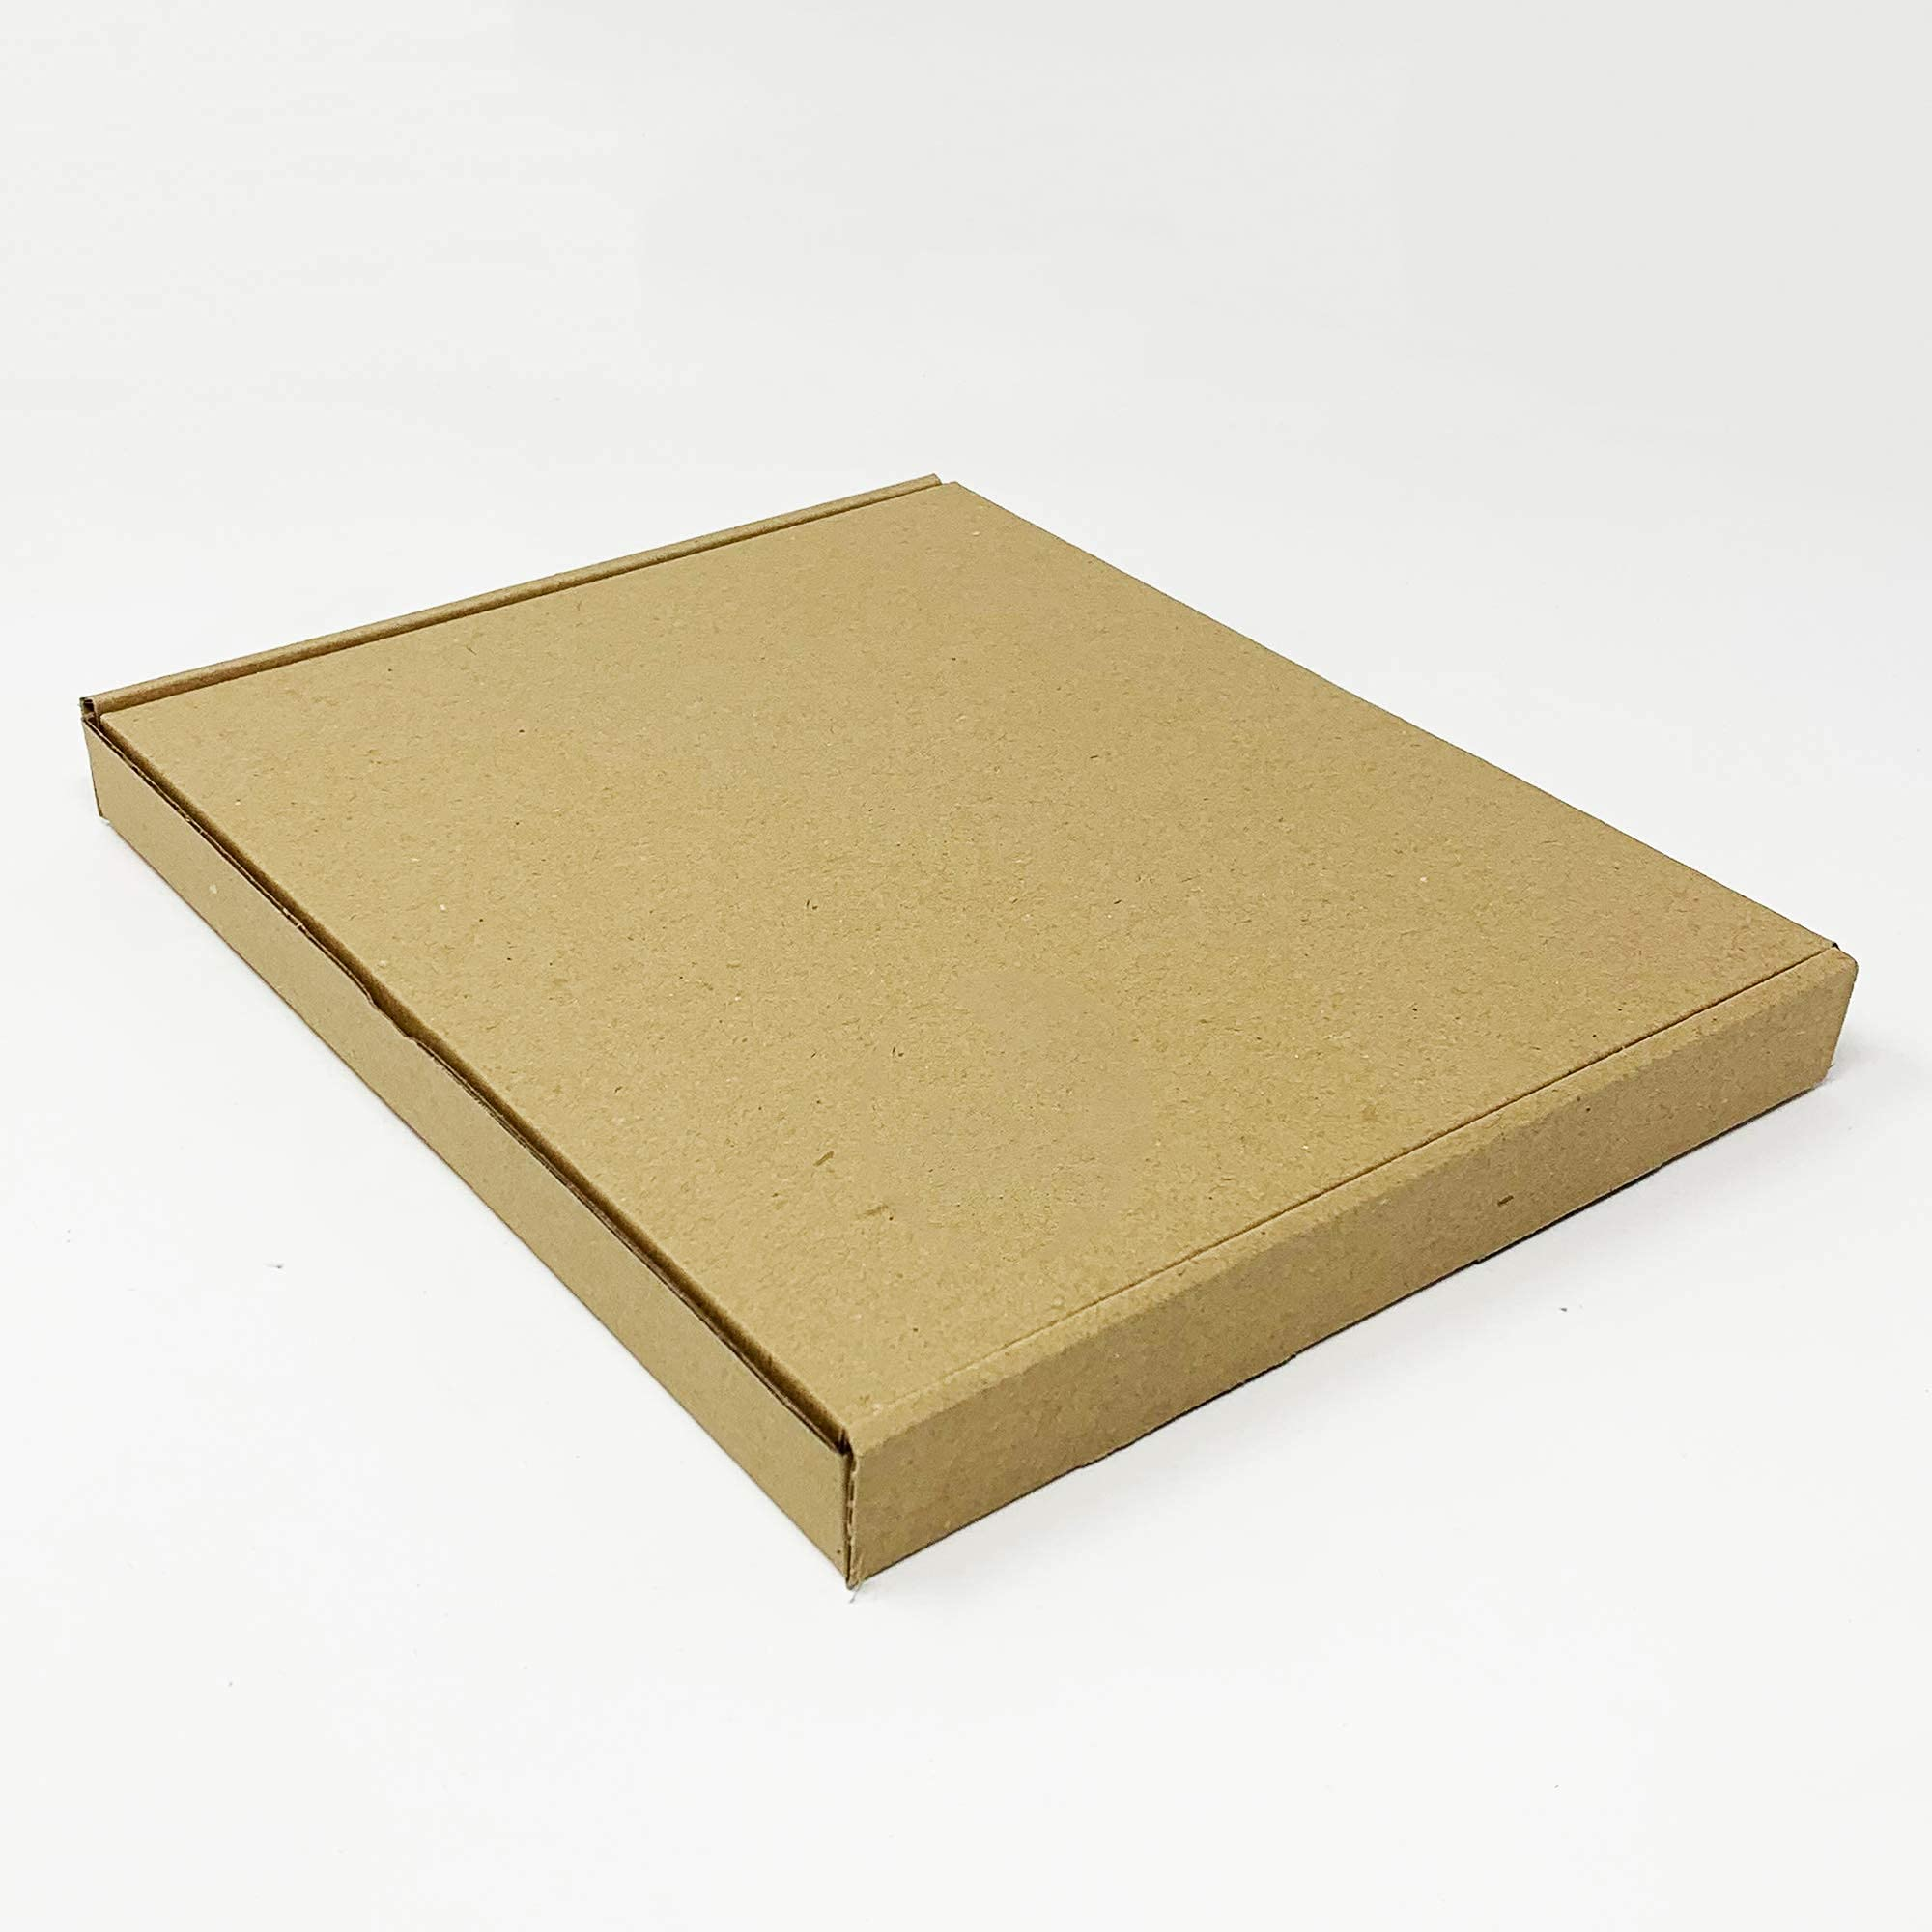 Tech-Pac - Pack of 10 – 235 mm x 190 mm x 24 mm Small Box Cardboard Wrap Kraft Packing Boxes Royal Mail Large Letter Mailing Posting Shipping Brown